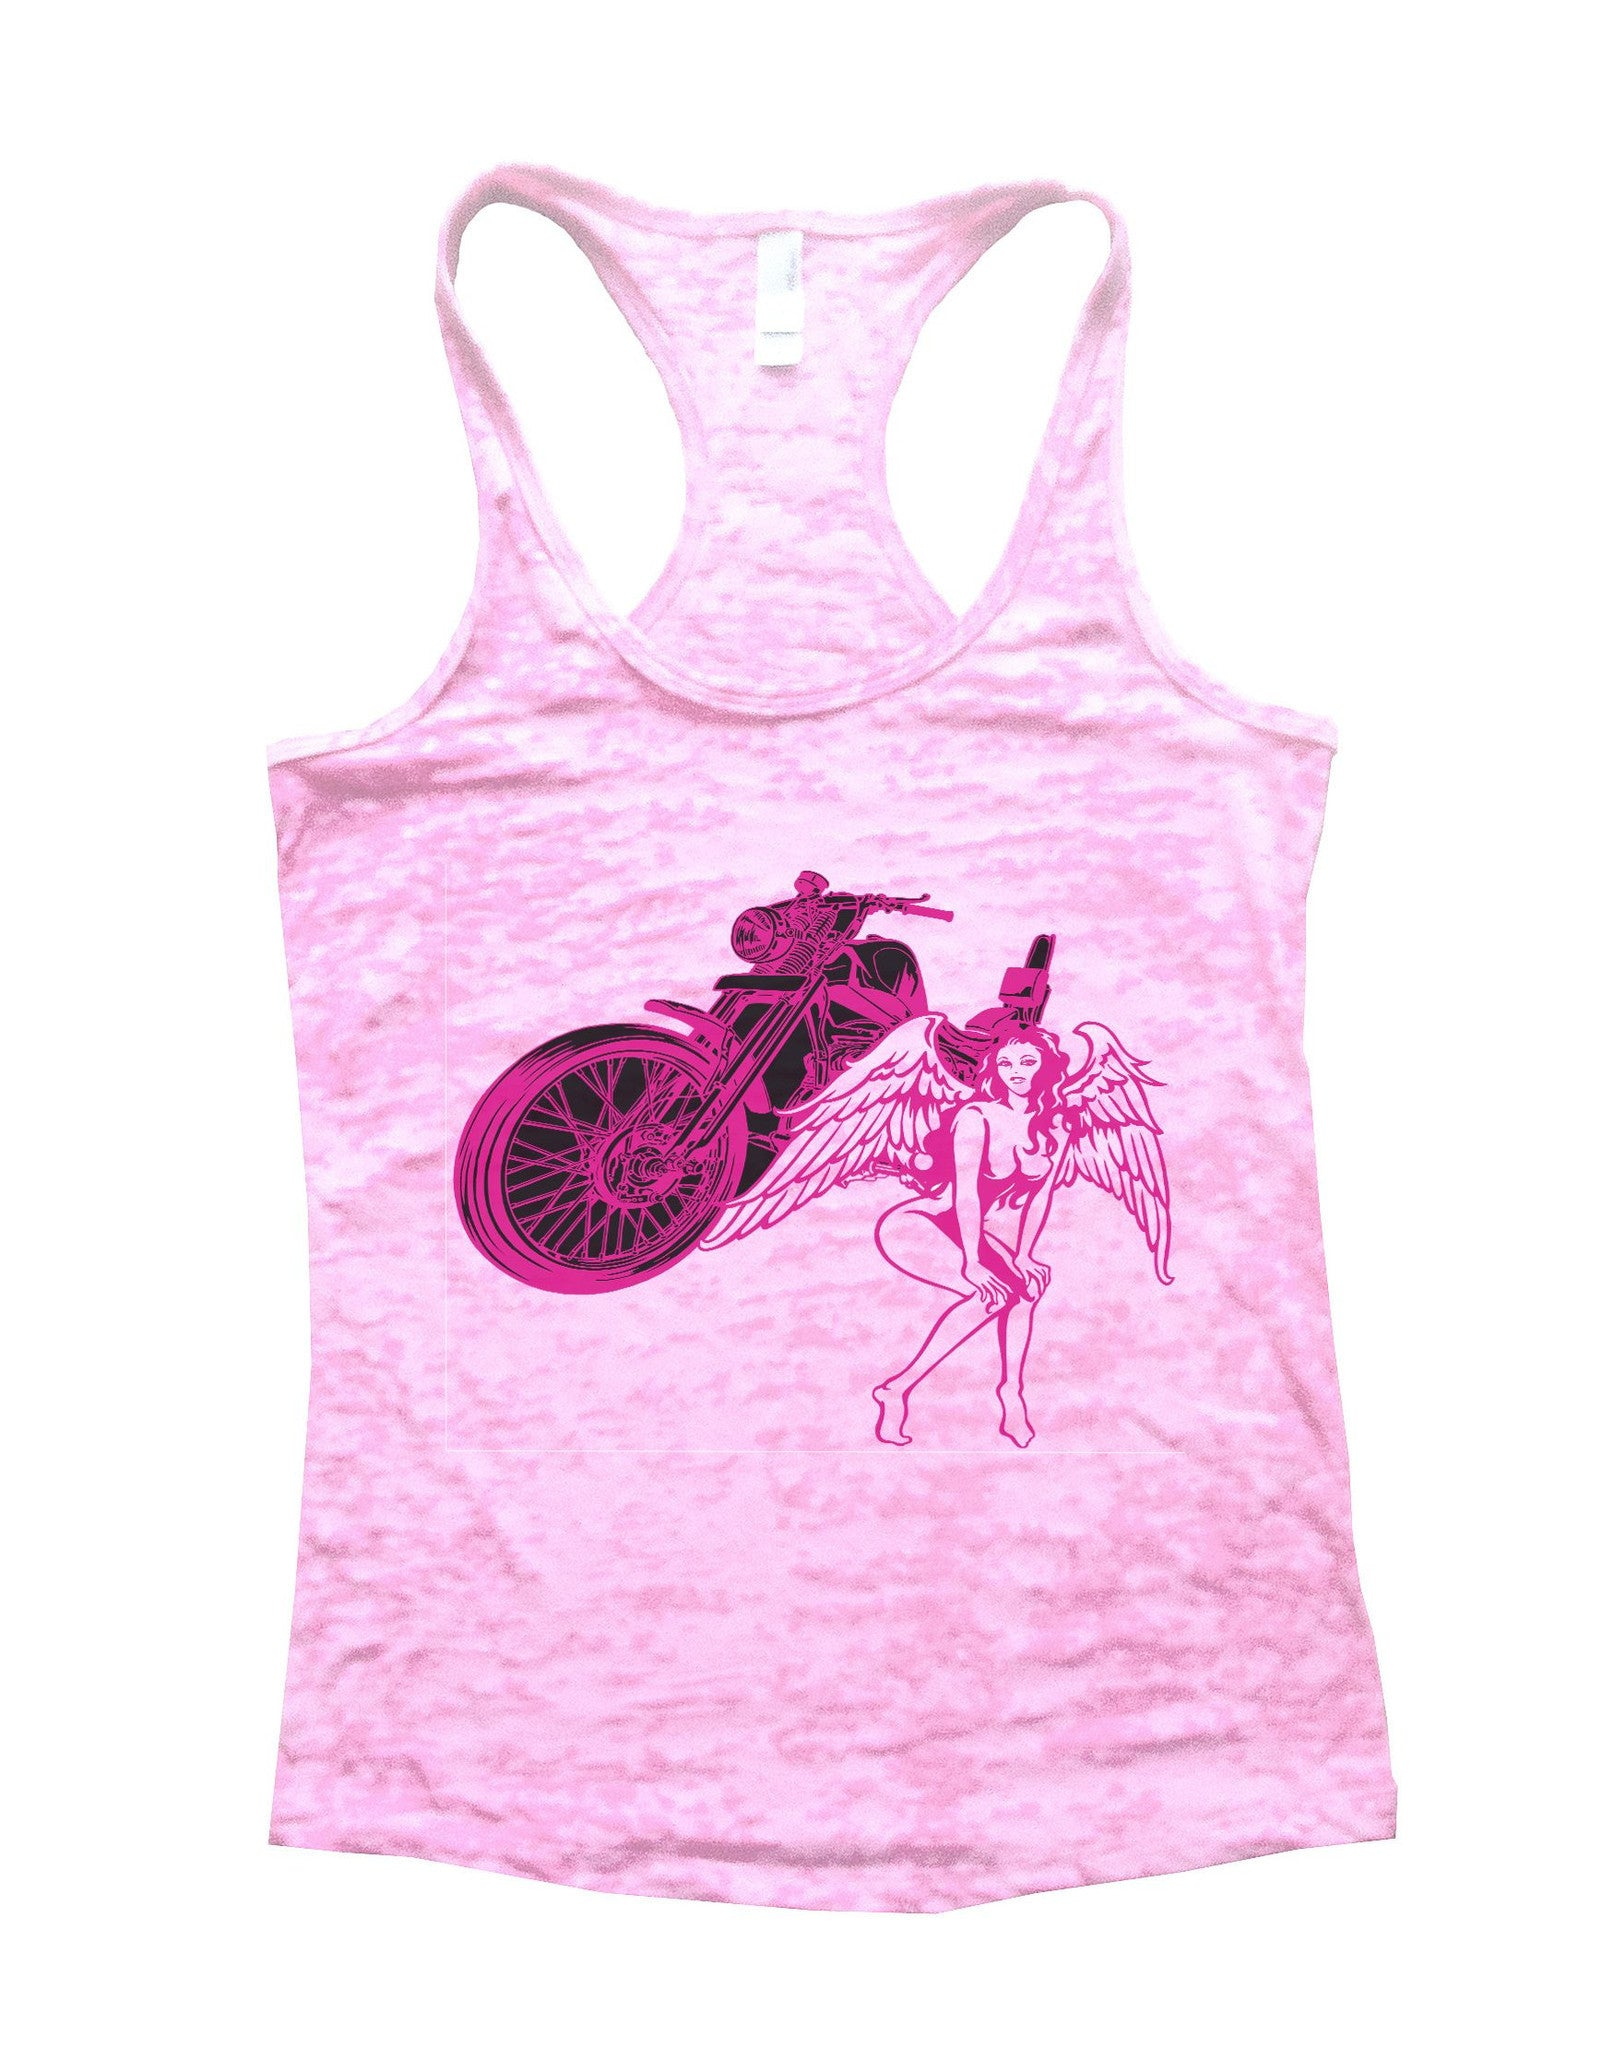 Bike And Women Burnout Tank Top By BurnoutTankTops.com - 700 - Funny Shirts Tank Tops Burnouts and Triblends  - 2